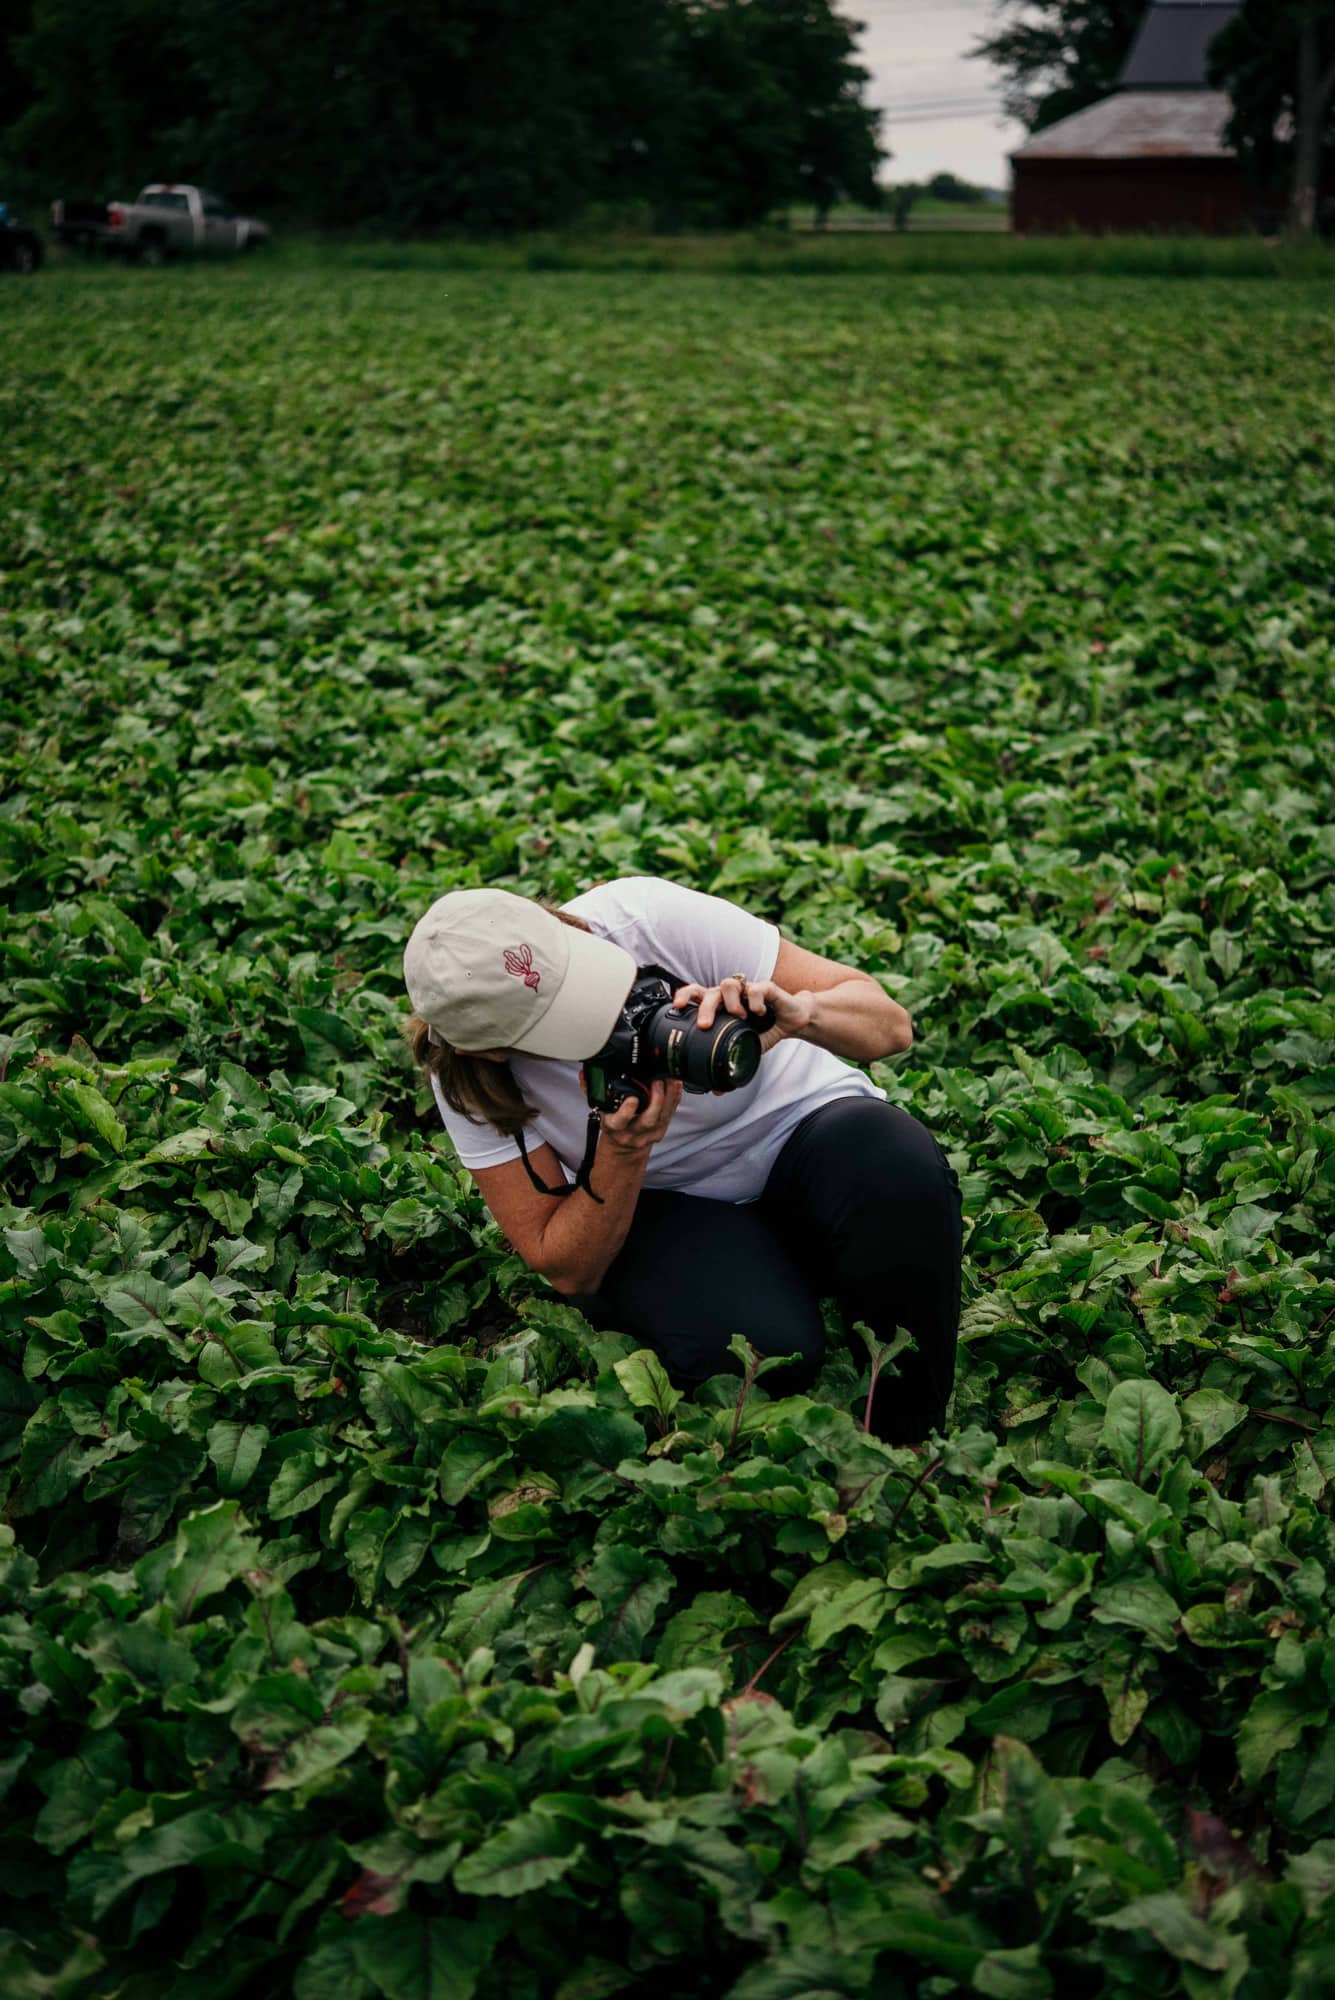 Photographer taking a photo in the beet field at Love Beets farm in New York